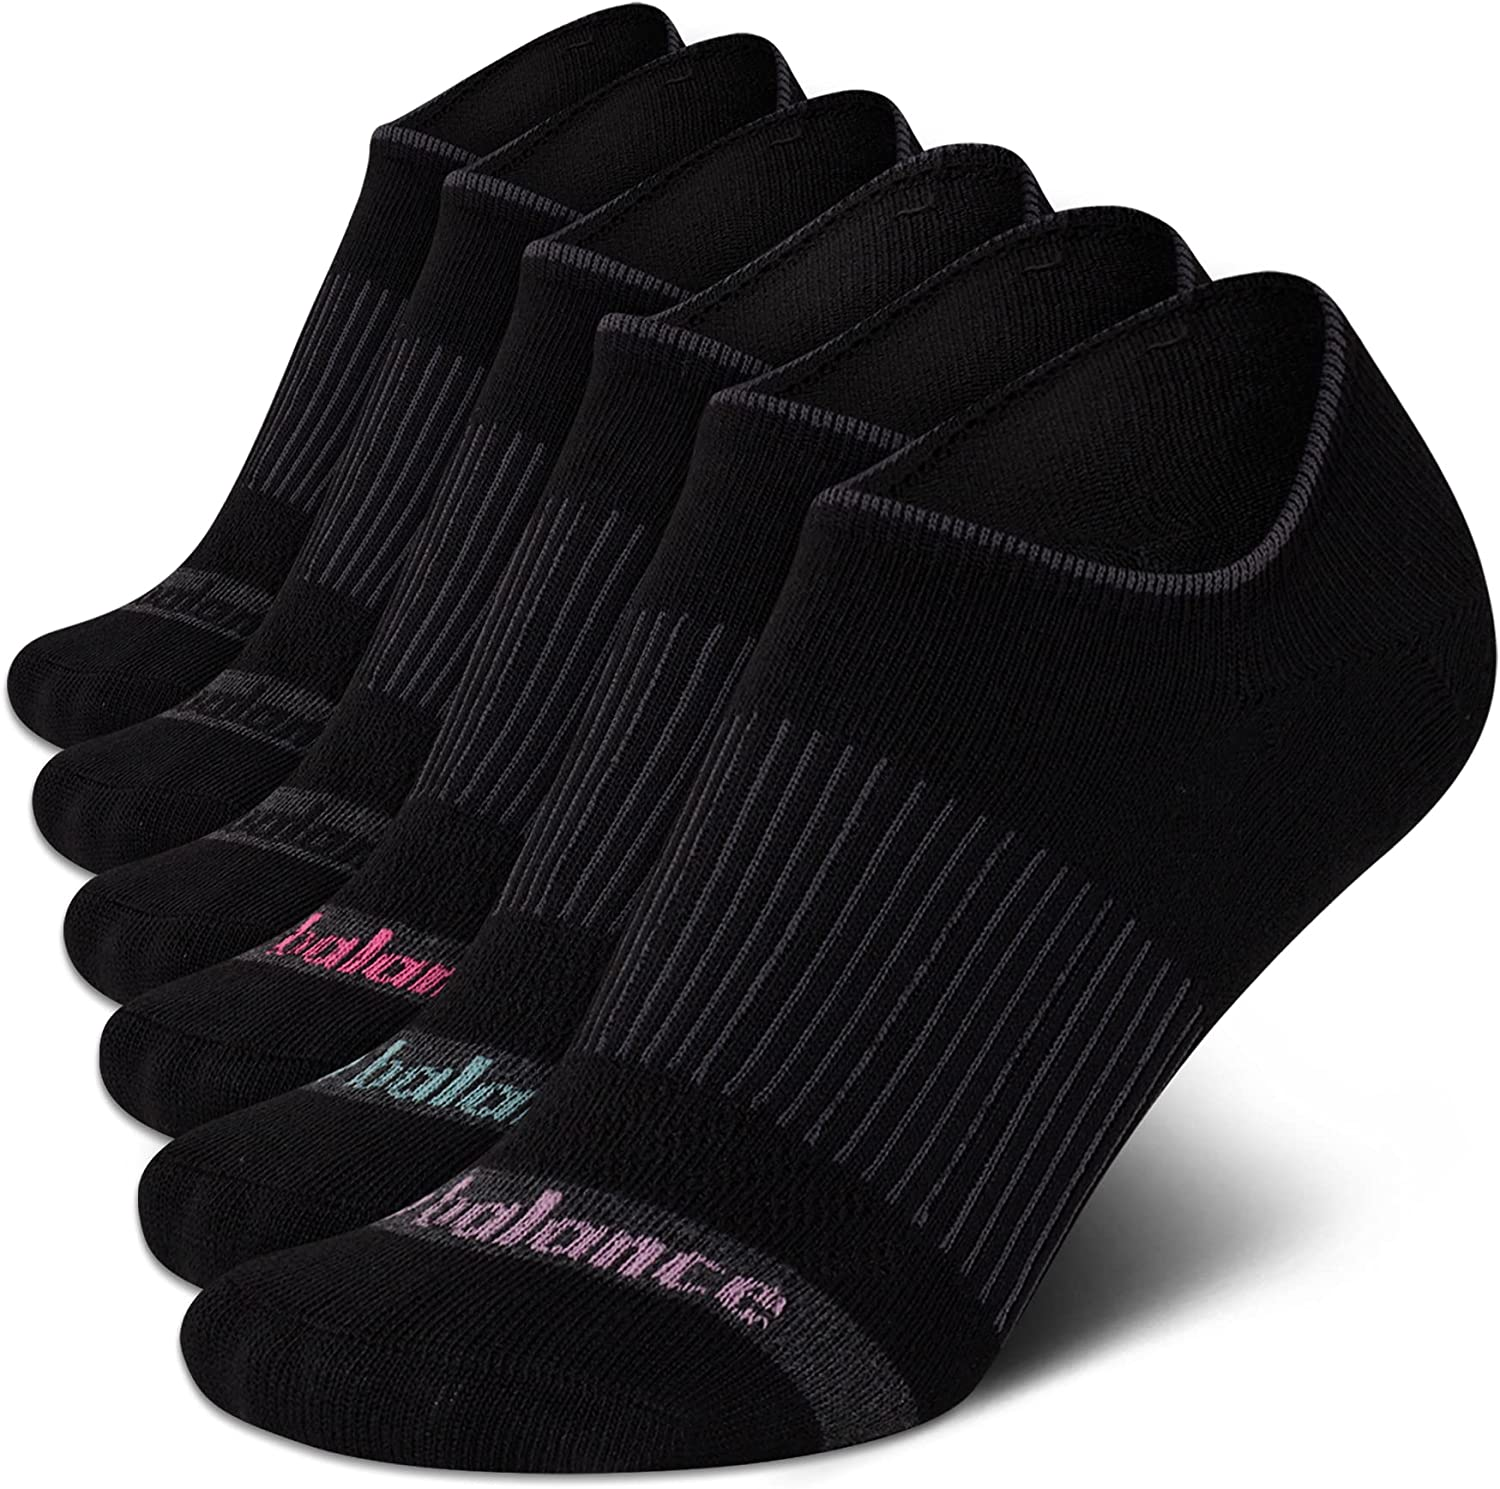 New Balance Women's Socks - Low Cut No Show Ankle Sock Liners (6 Pack)